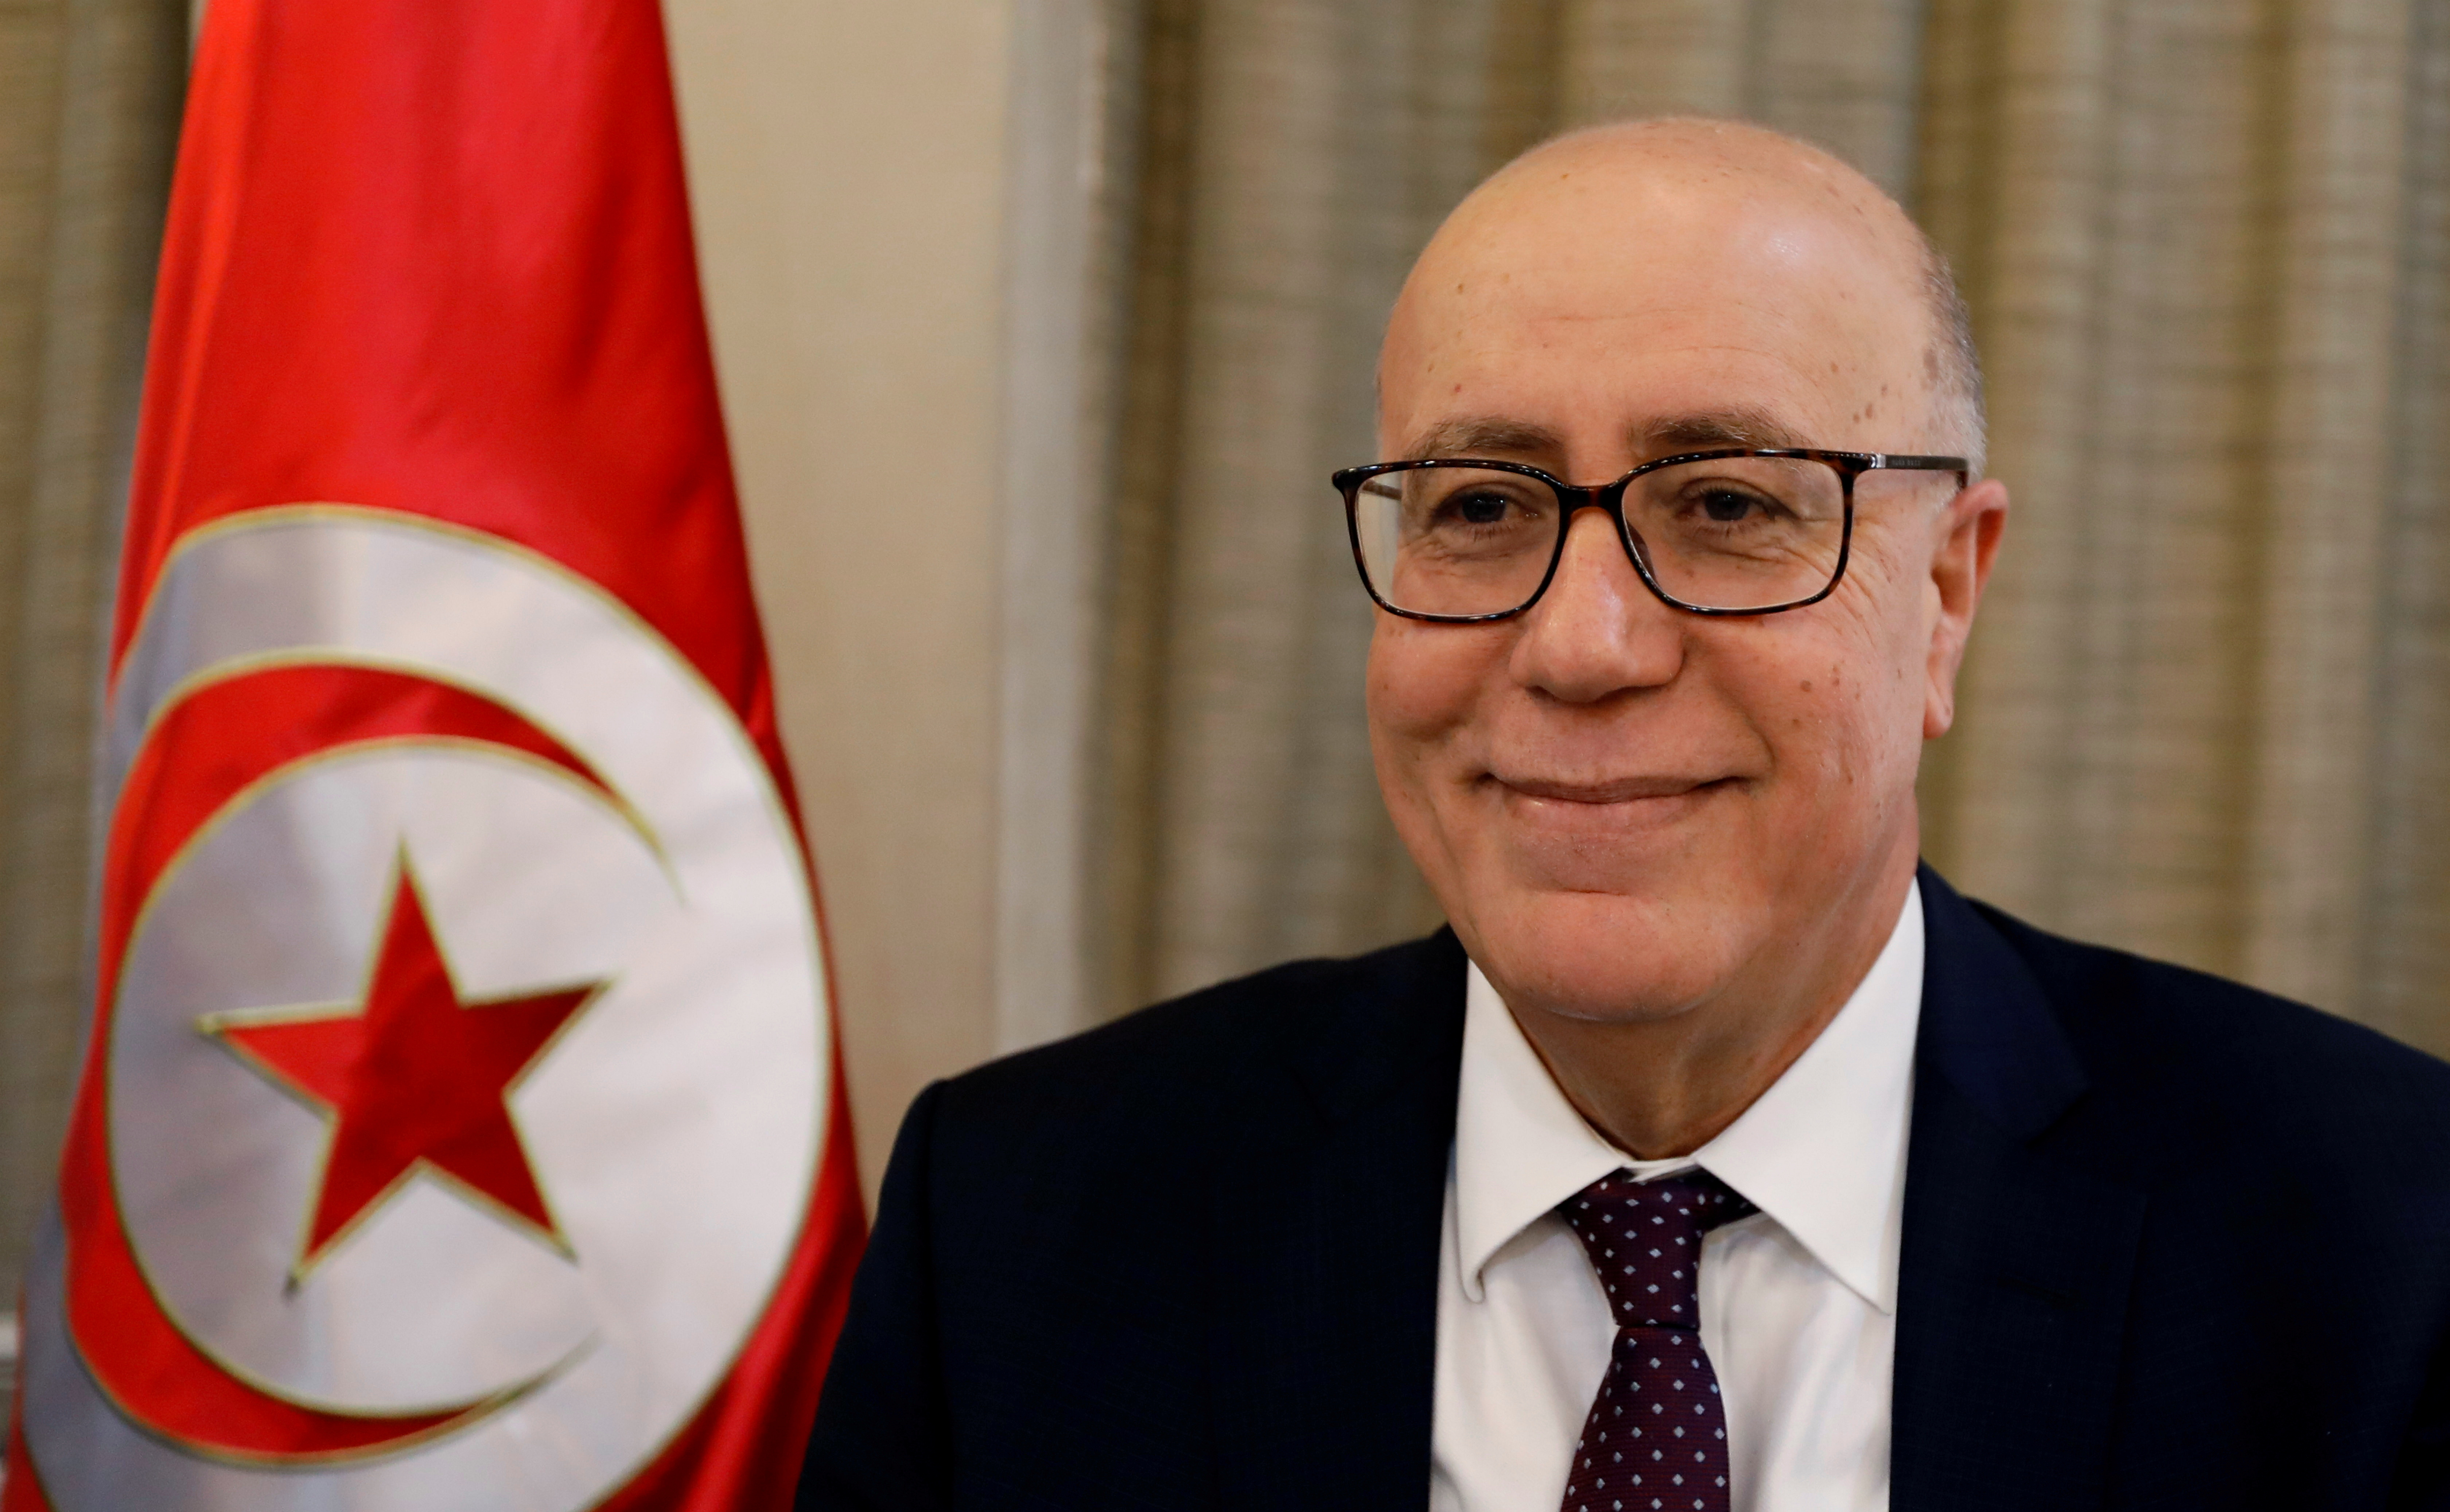 Tunisia's Central Bank governor Marouane El Abassi attends a news conference in Tunis, Tunisia, February 20, 2019. REUTERS/Zoubeir Souissi